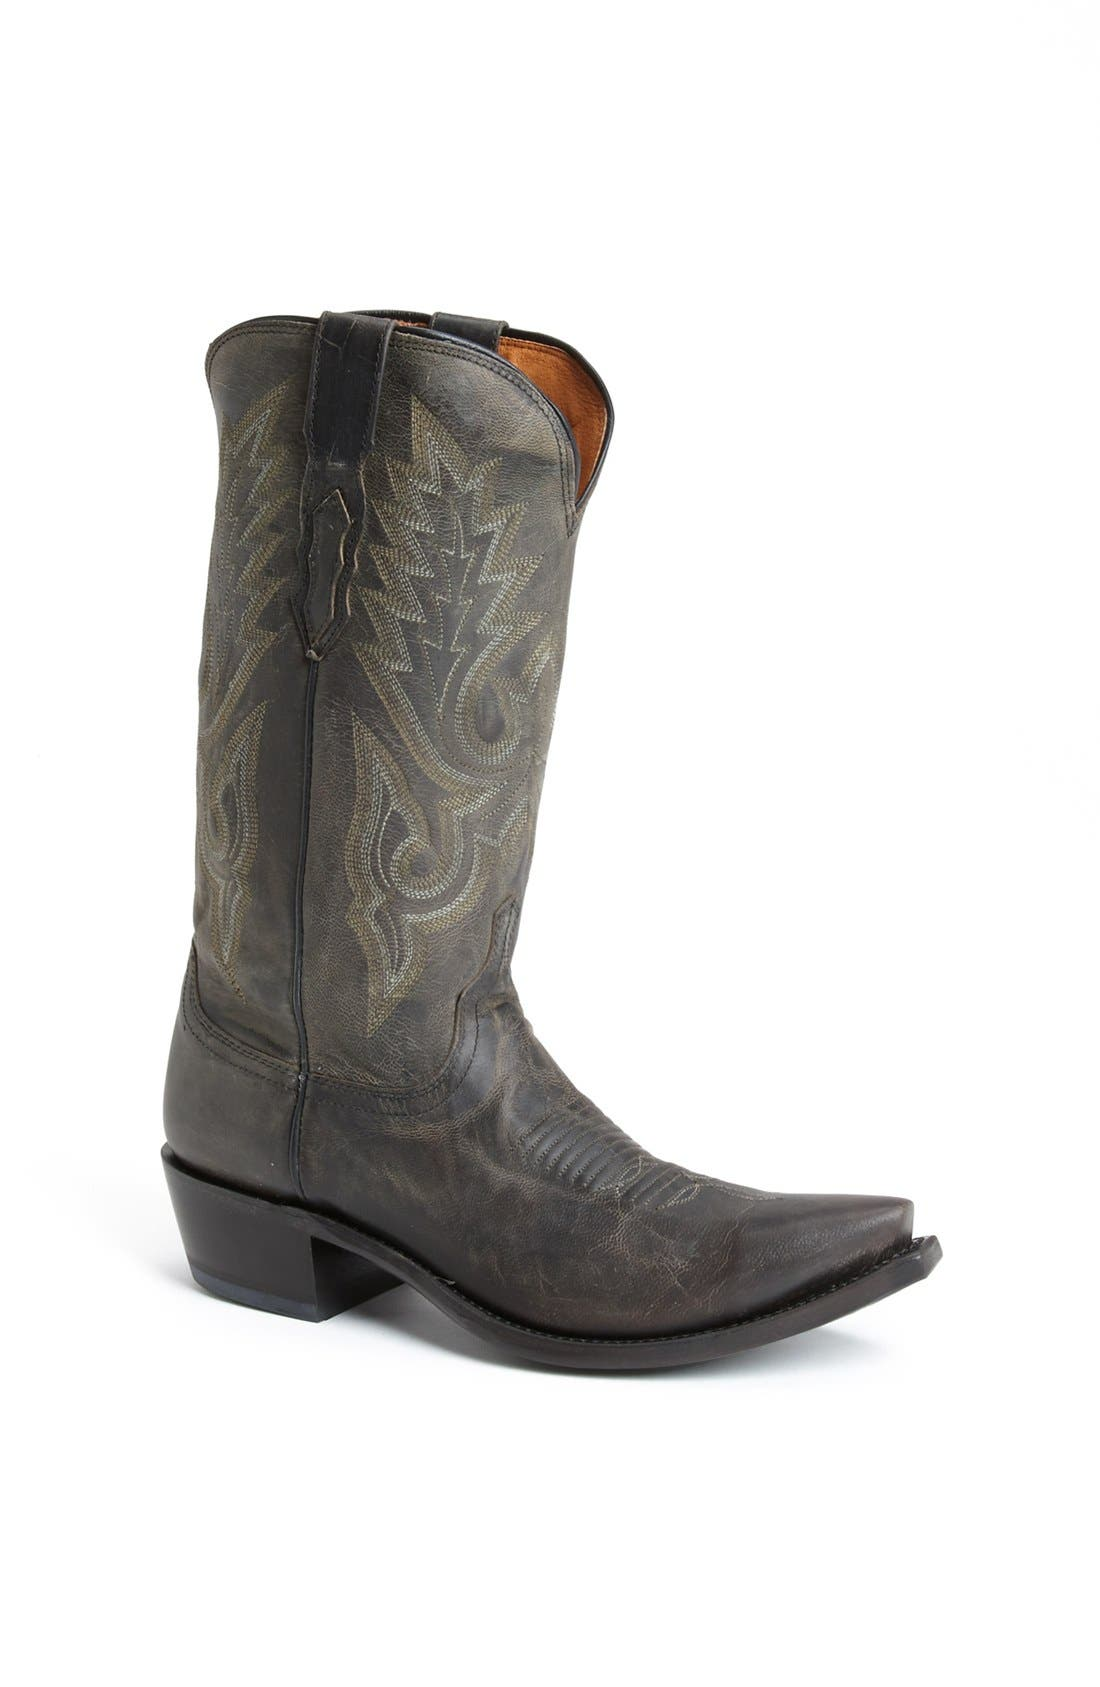 Main Image - Lucchese 'Gill' Boot